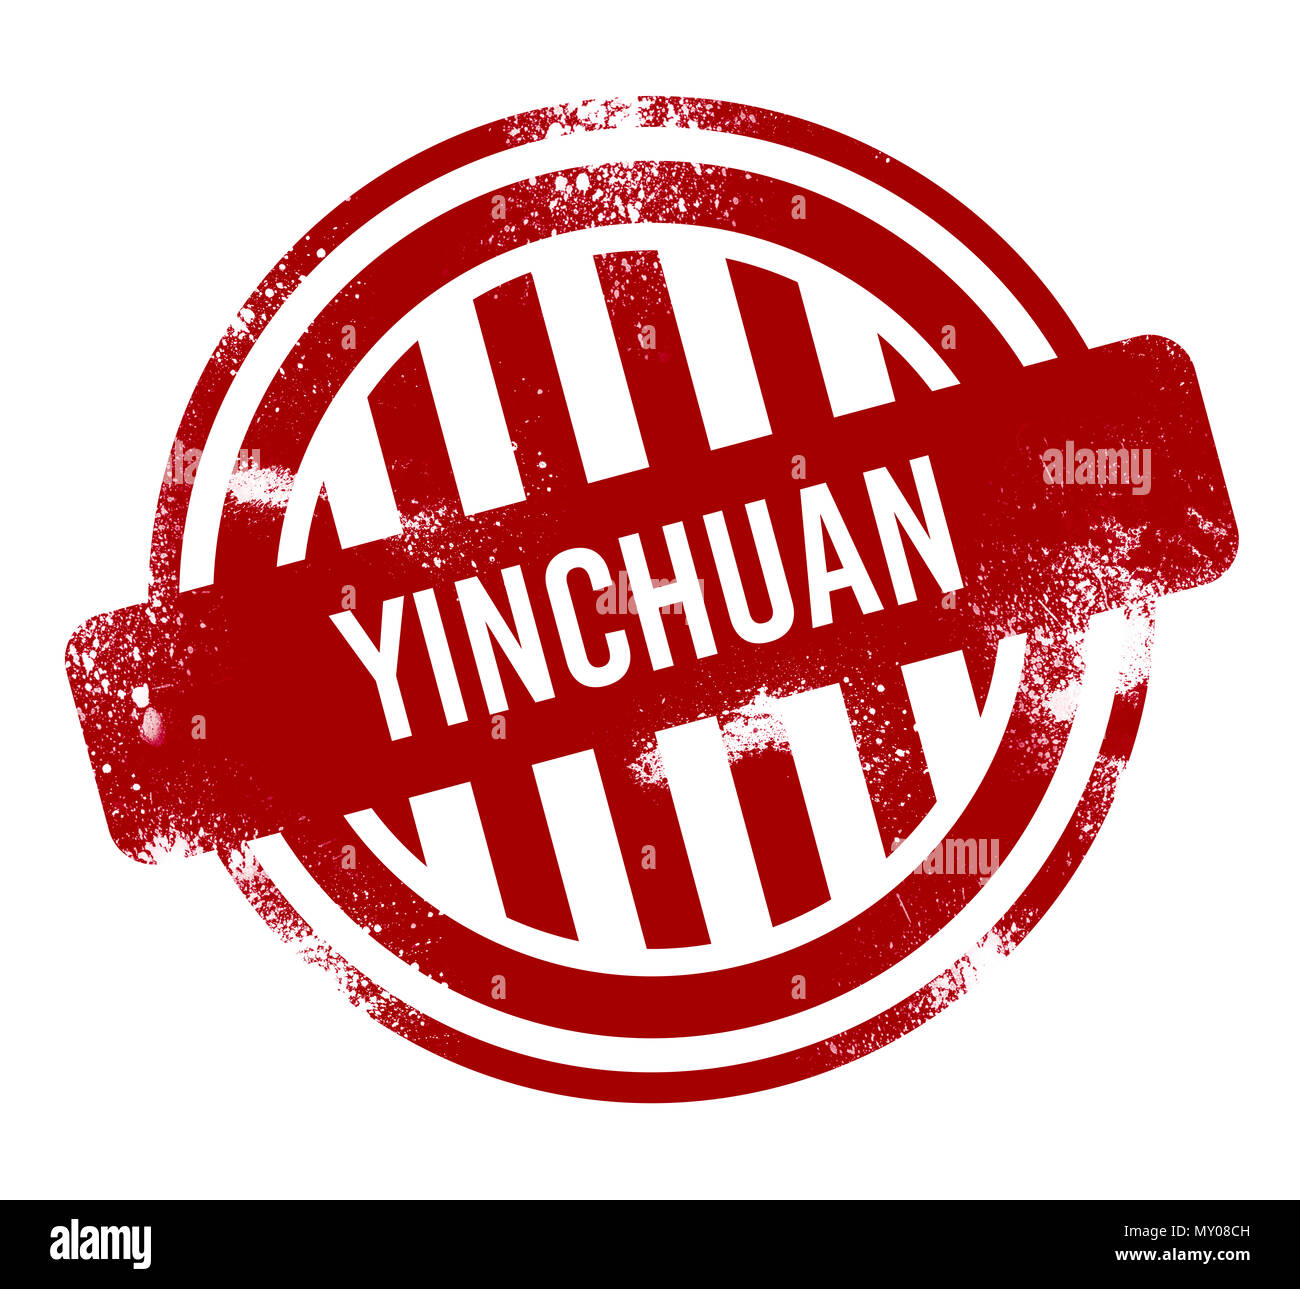 Yinchuan - grunge stamp, bouton rouge Banque D'Images